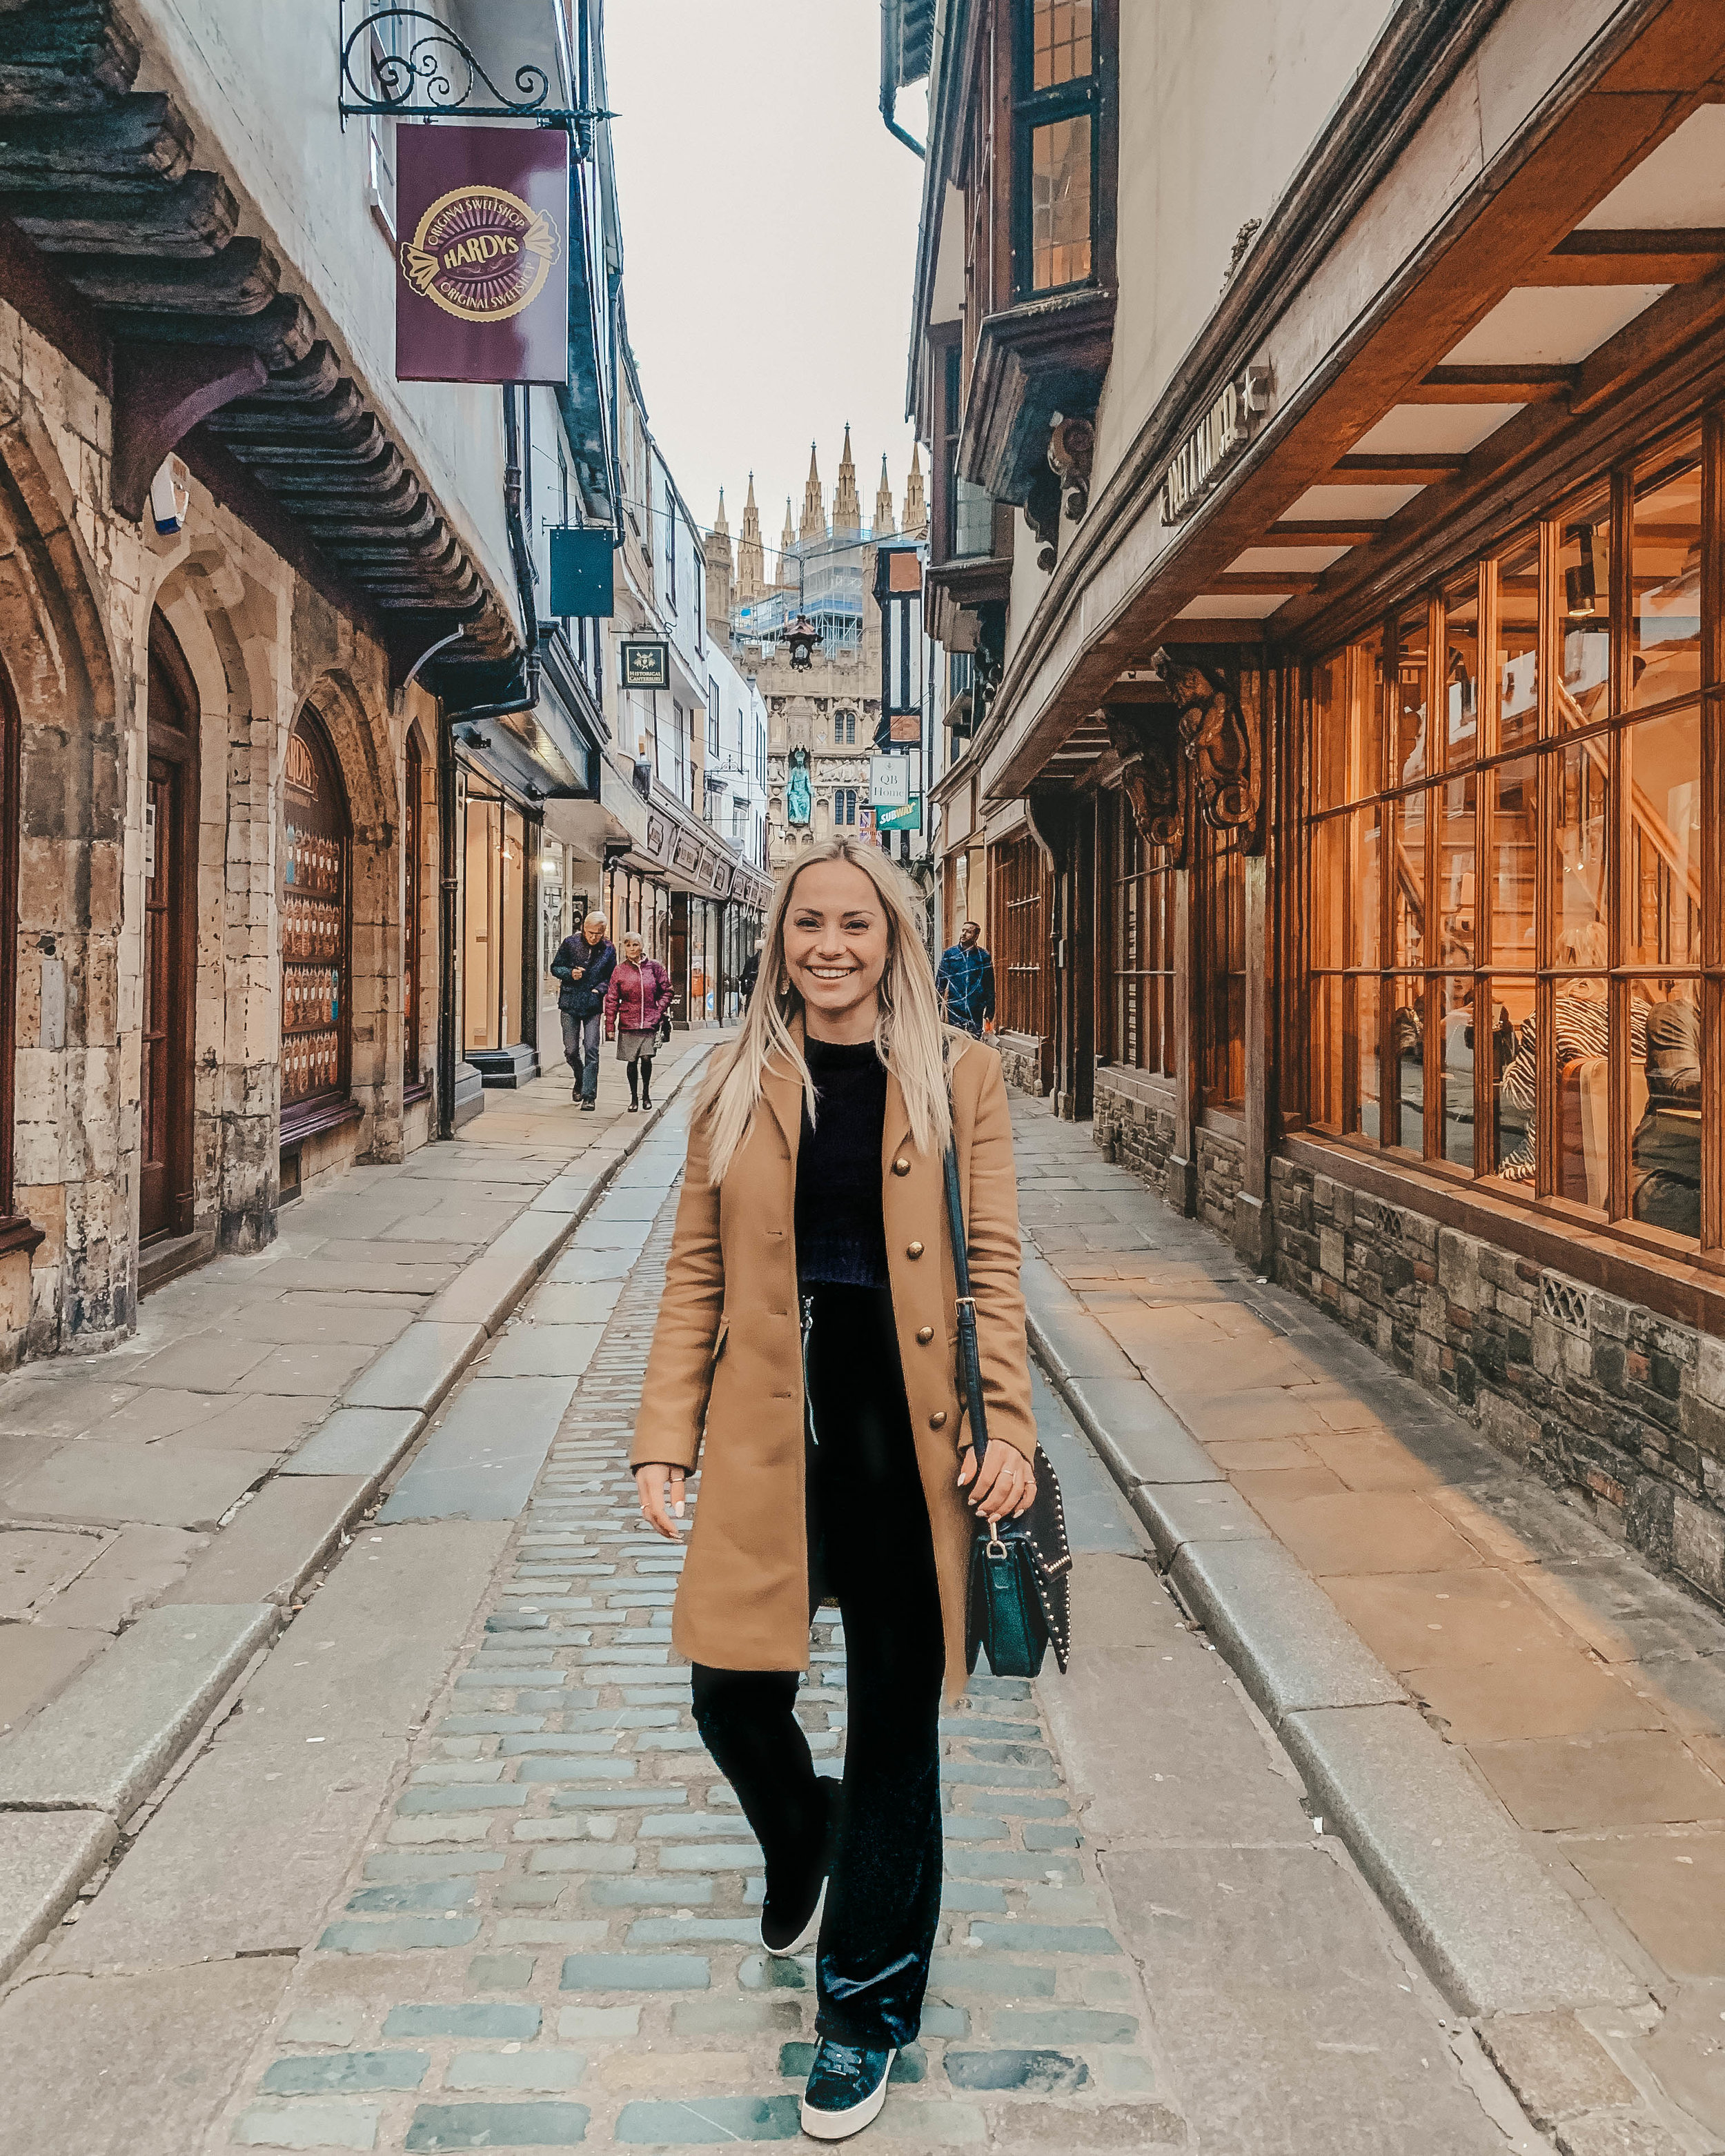 Marissa Galle, Canterbury, England, The Canterbury Tales, Travel Blogger, Fashion Blogger, Lifestyle Blogger, Beauty Blogger, Beauty Specialist, Content Creator, Social Media Manager